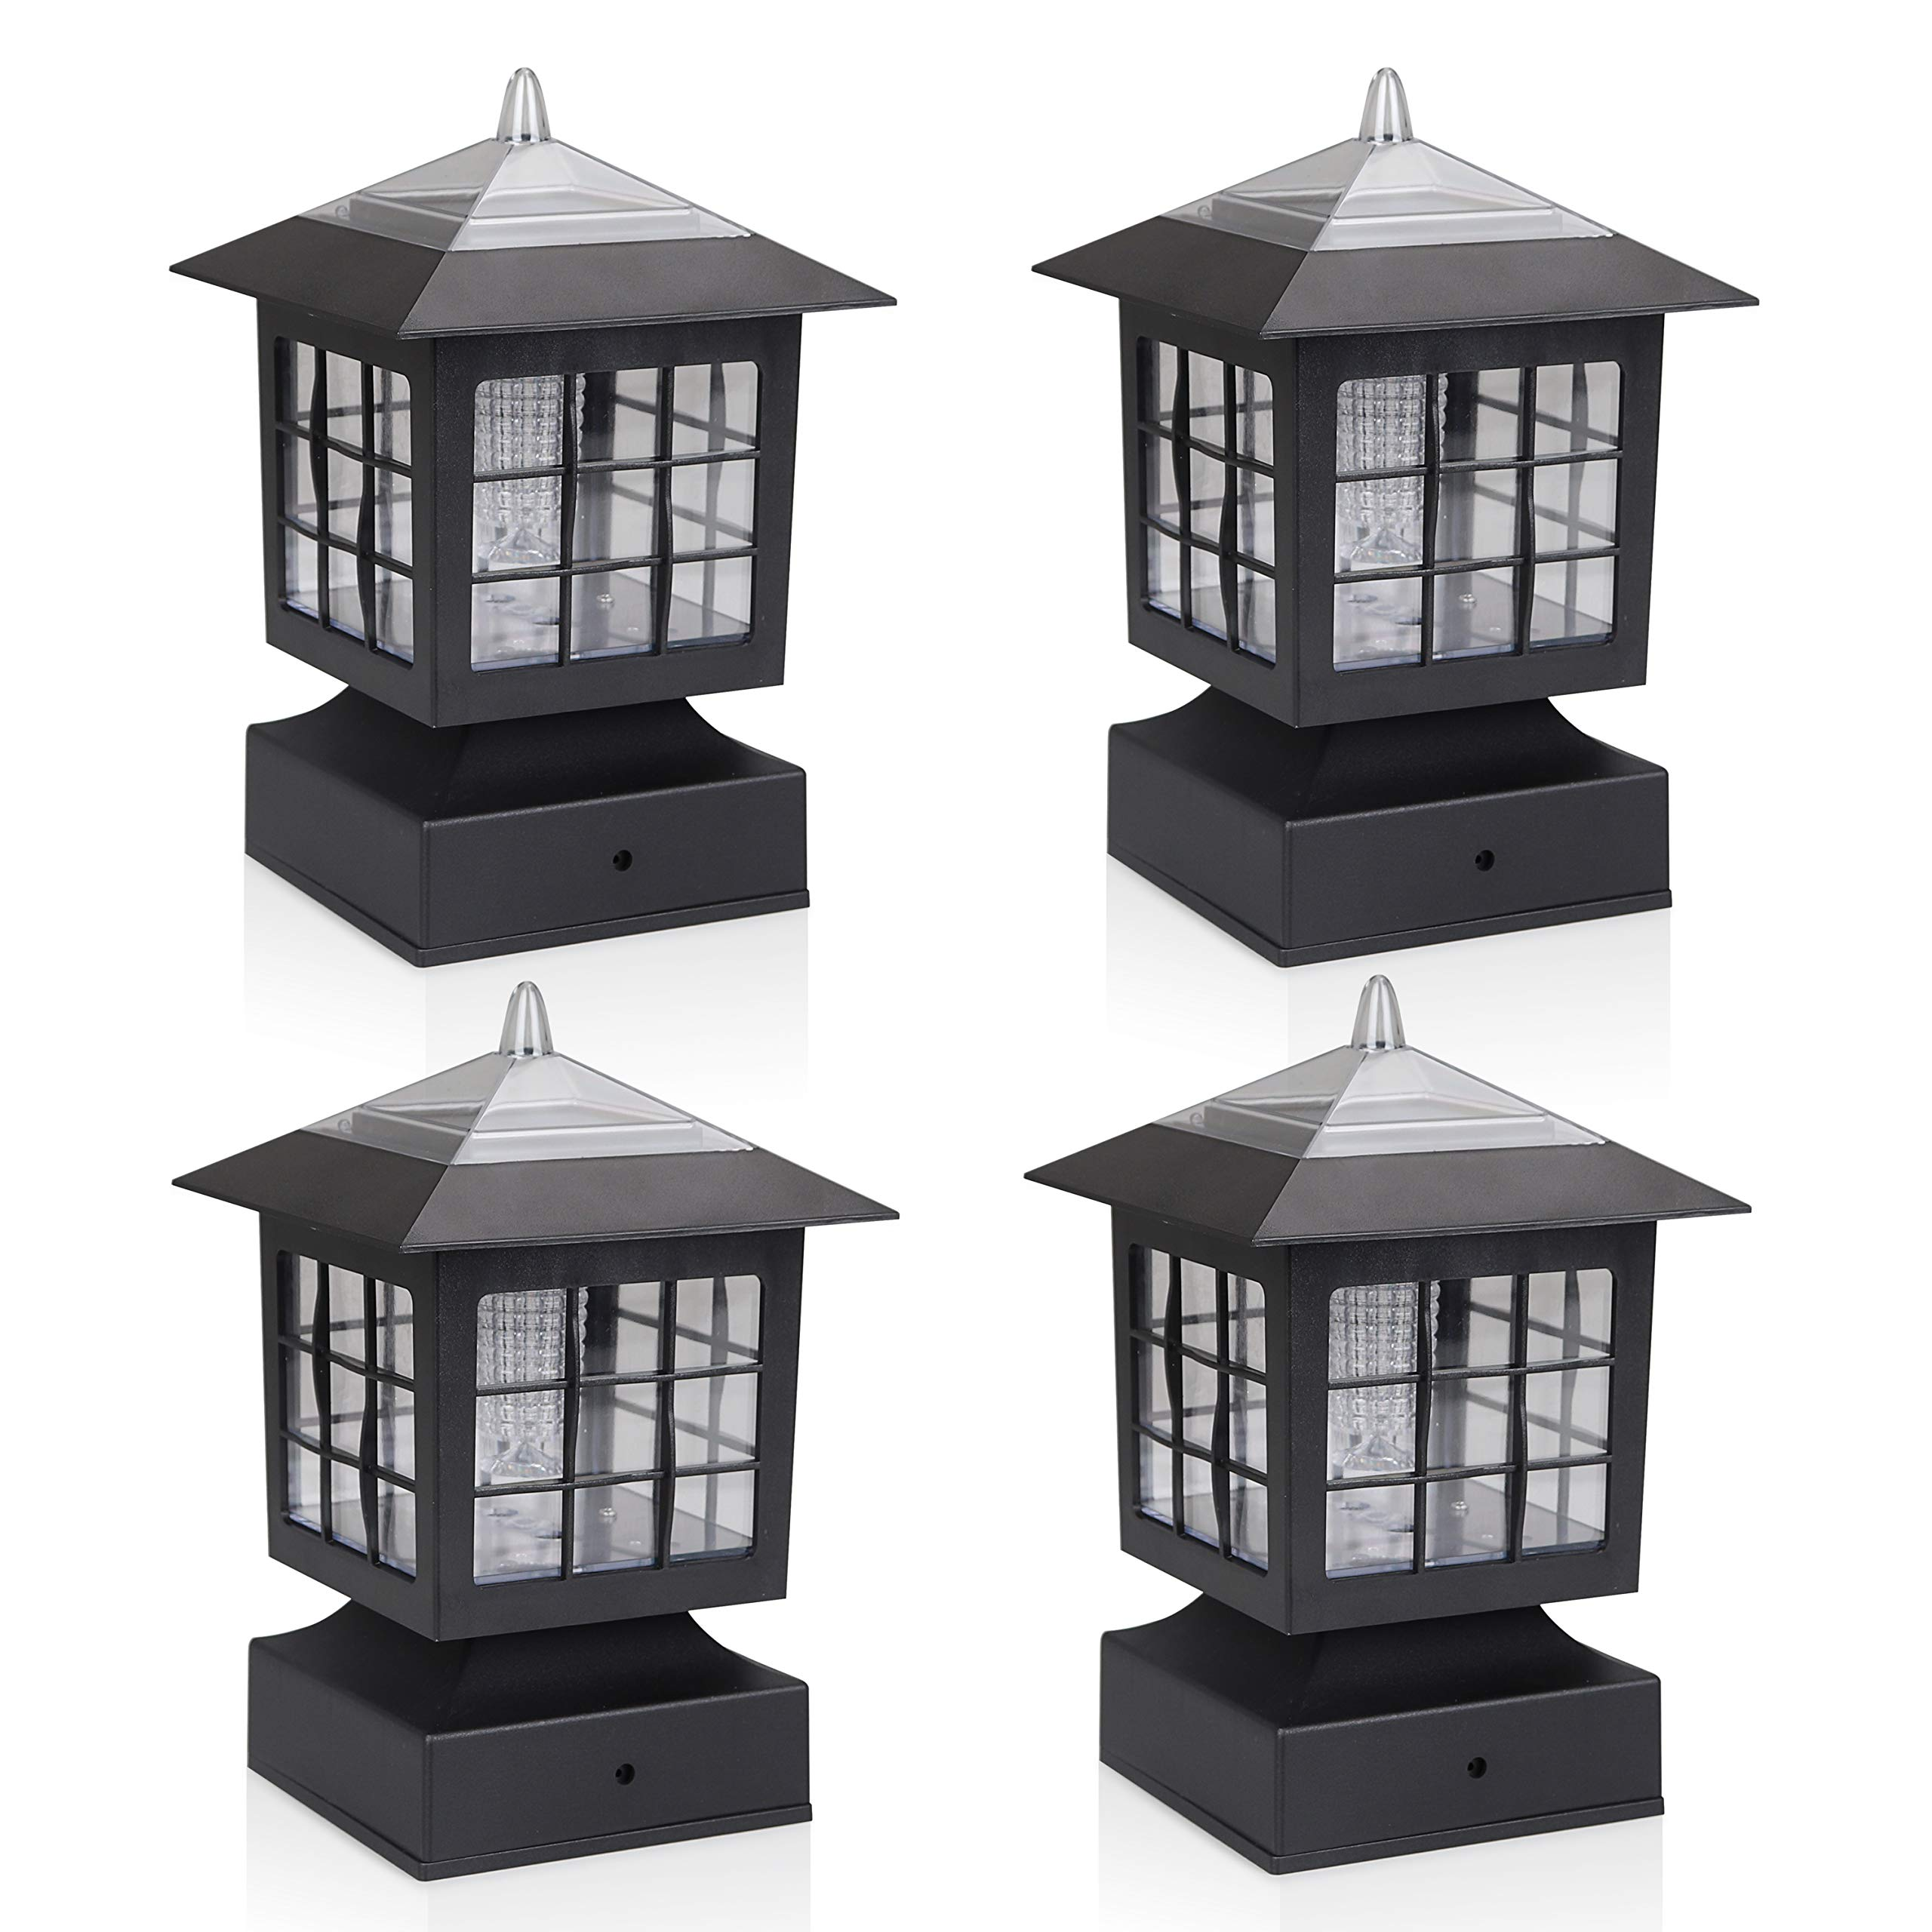 KMC LIGHTING KS101X4 Outdoor Solar Post Fence Paveway Pathway Square Lights 4 Pack with 4-Inch Fitter Base Outdoor Garden Post Pole Mount 4.88X4.88X7.48''